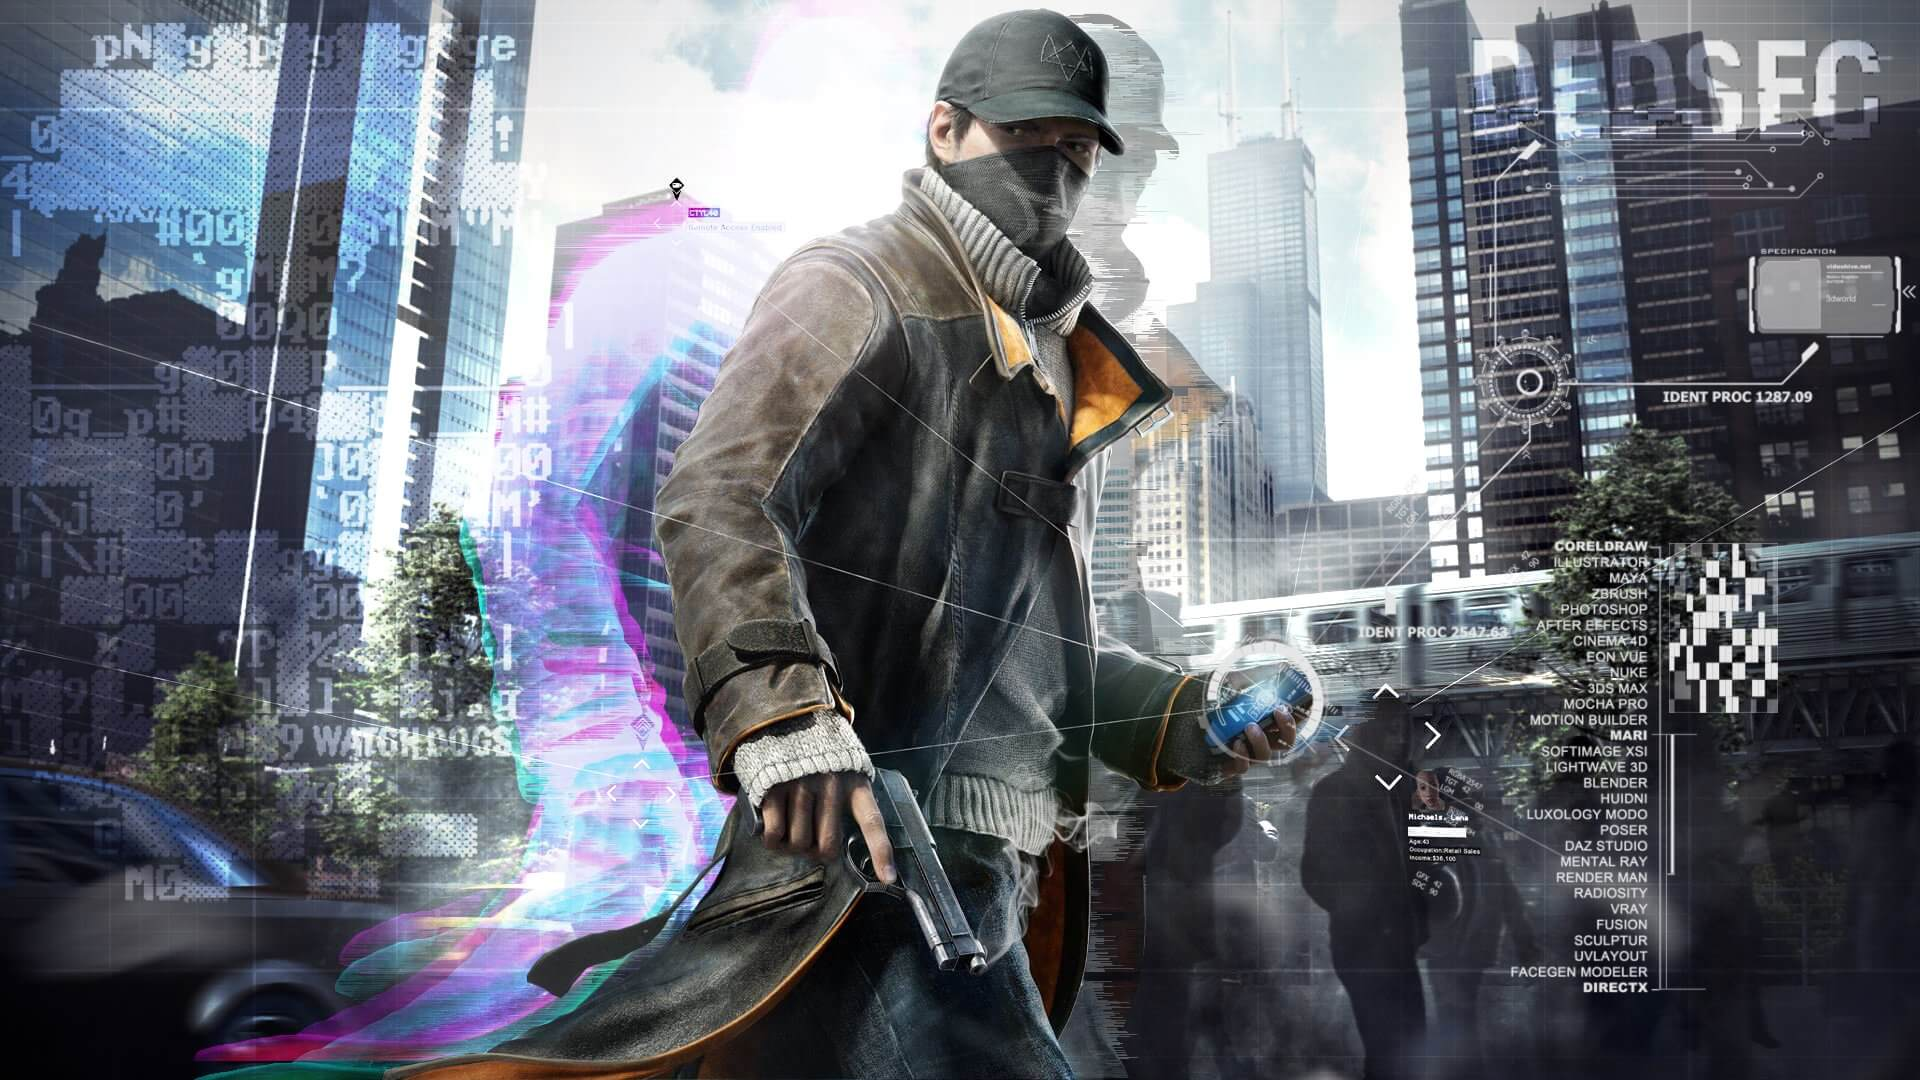 Watch Dogs gratis con el Season Pass de Watch Dogs Legion